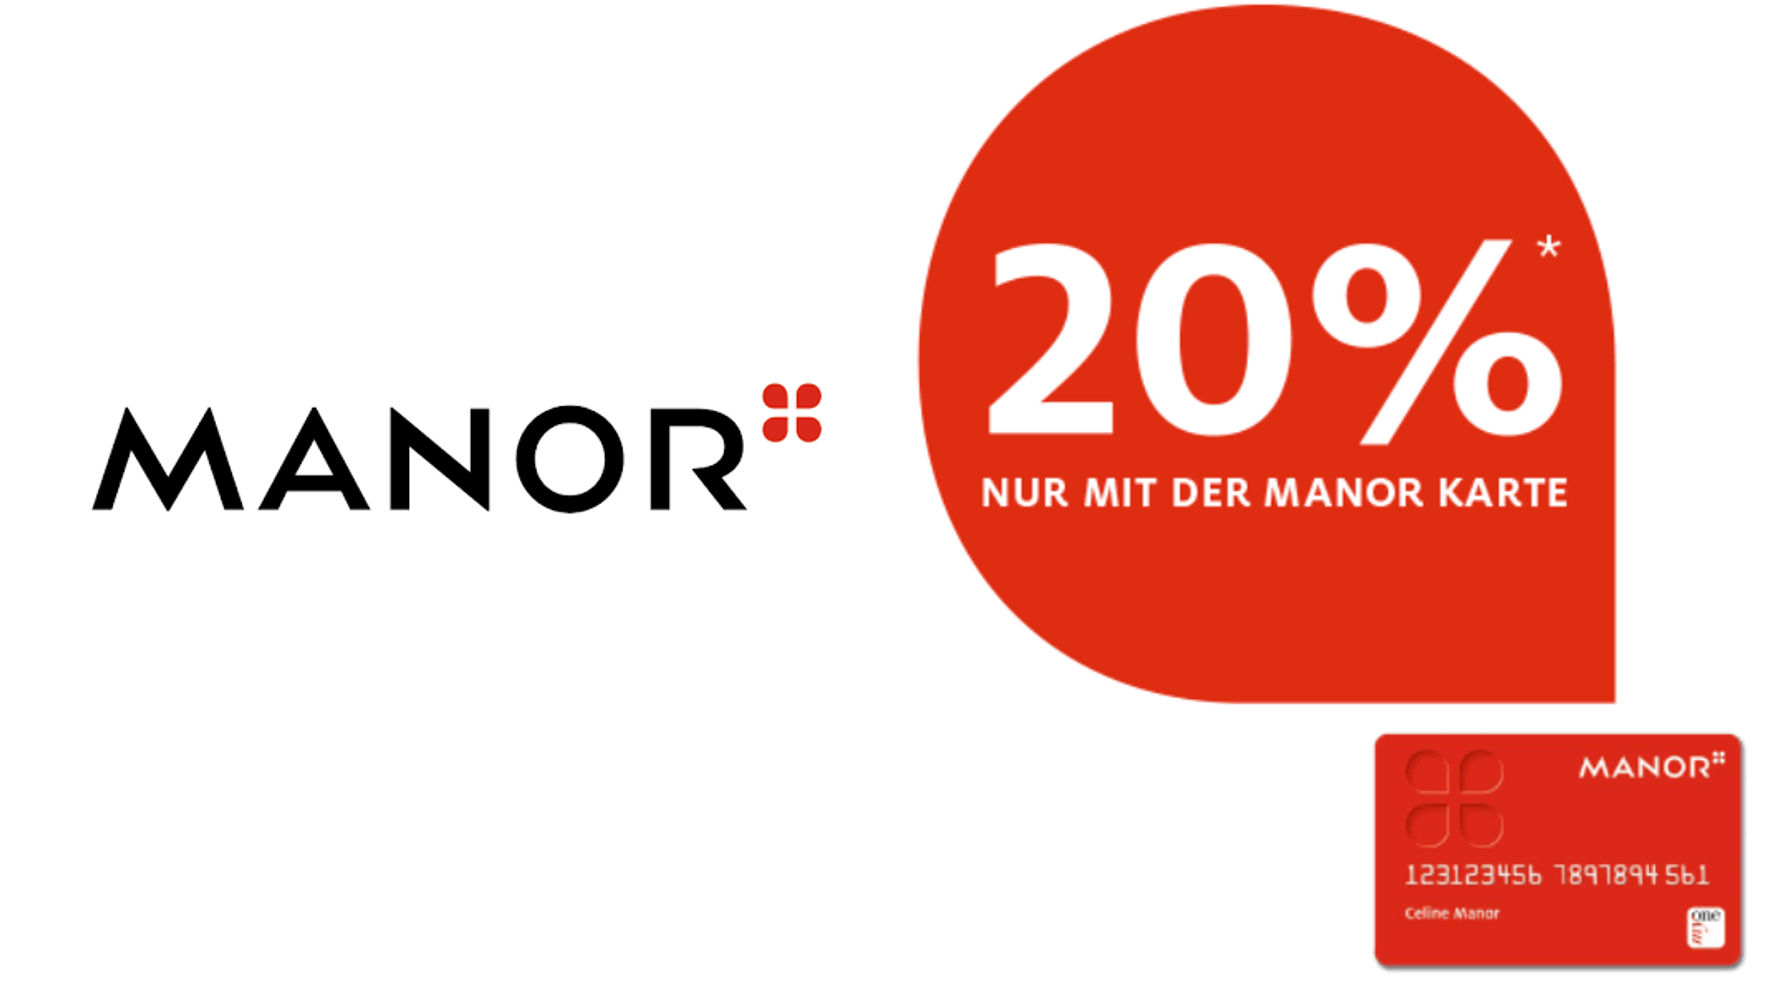 Black Friday Angebot Pre Black Friday Bei Manor 20 Auf Fast Alles